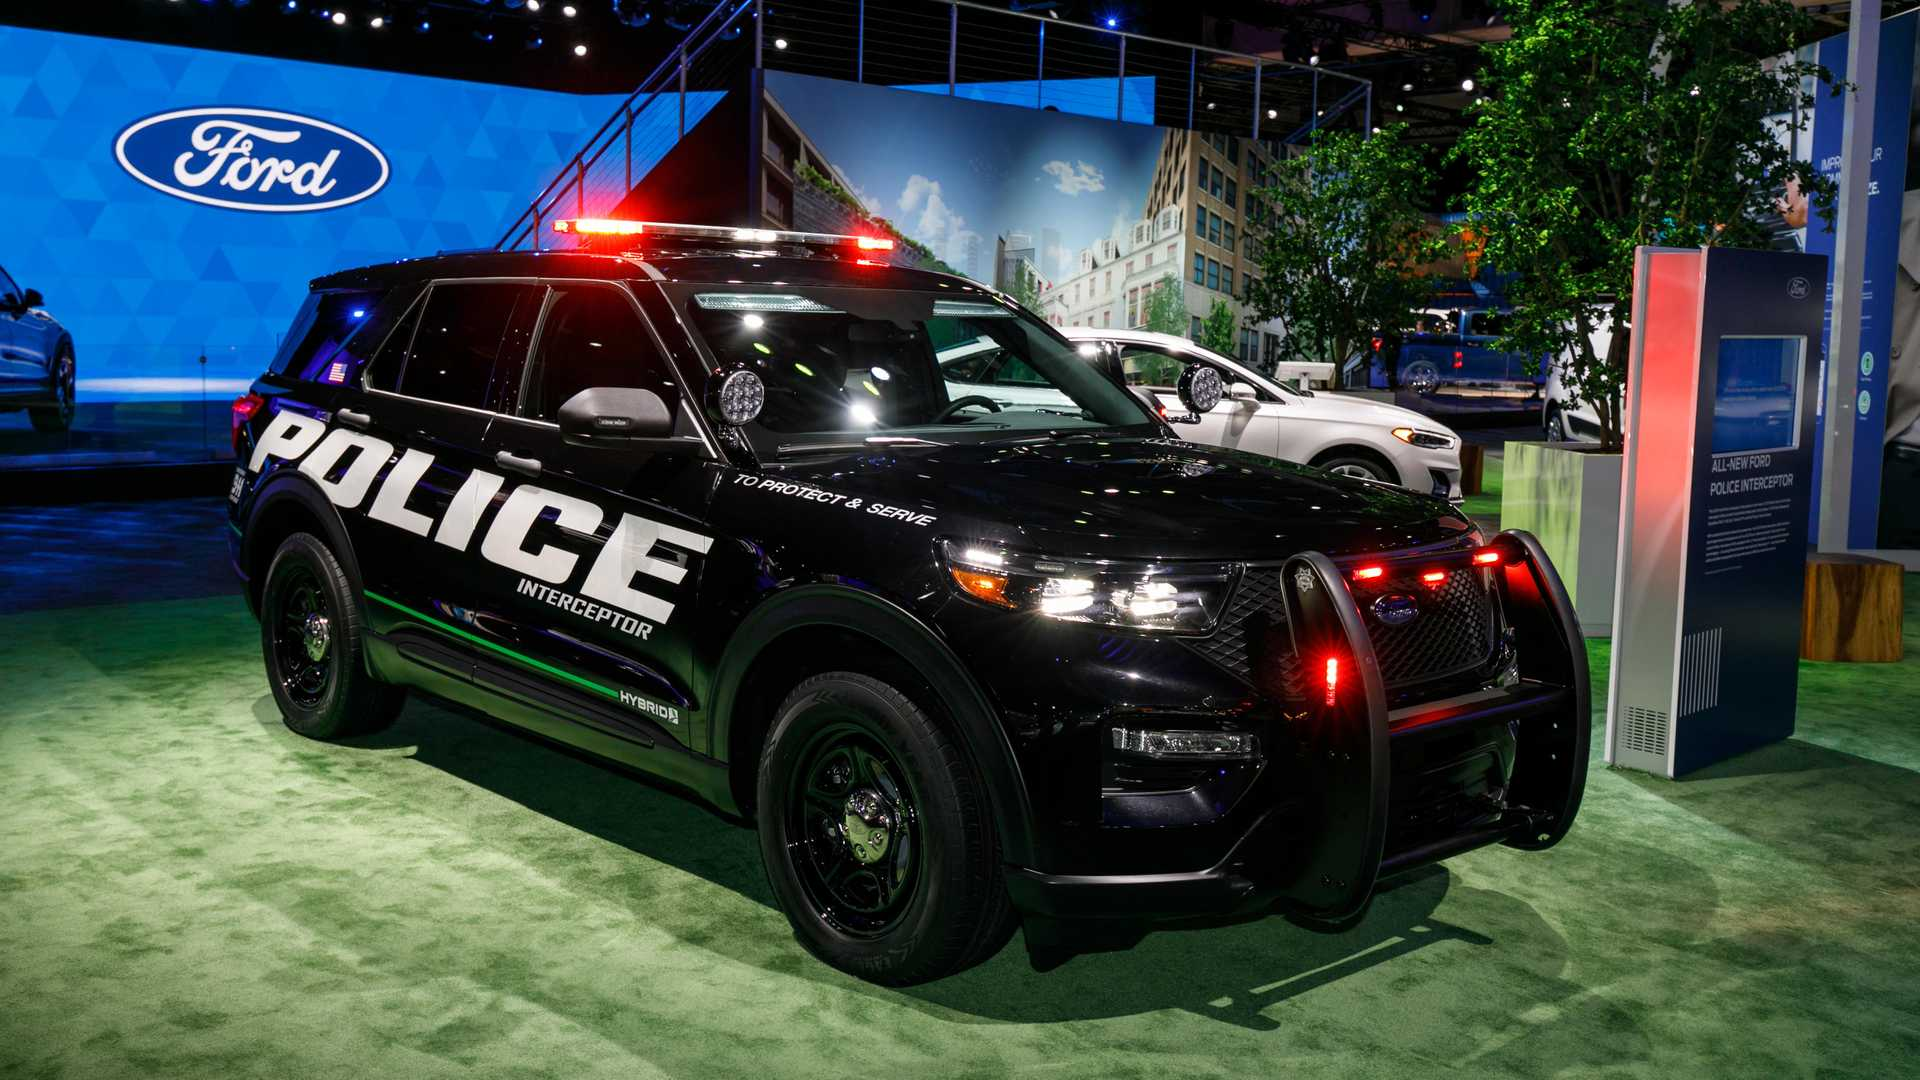 24 A Ford Police Interceptor 2020 Research New